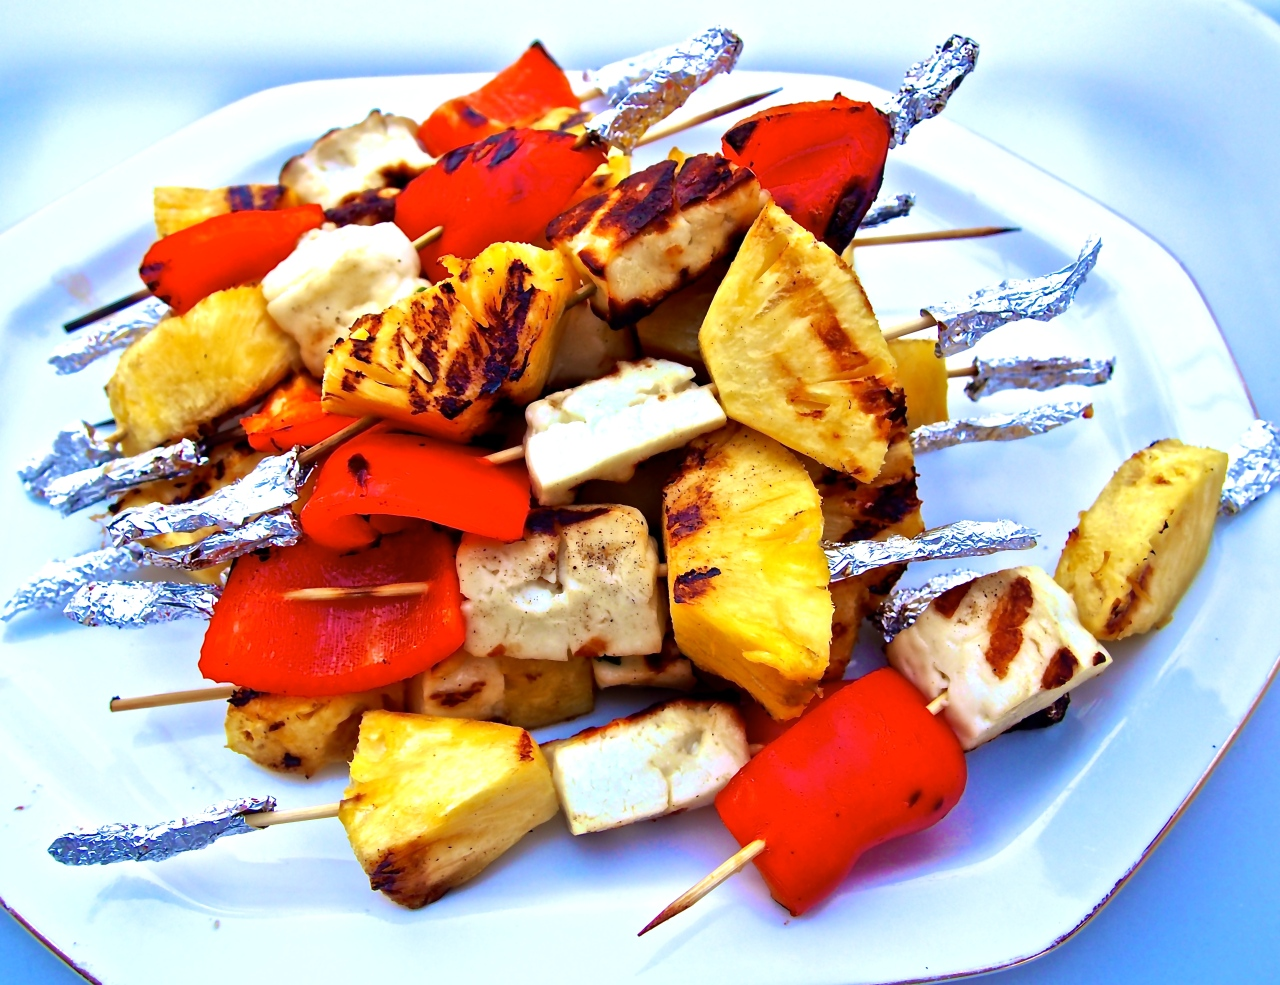 BBQ time! Skewers of Haloumi, fresh Pineapple and Red Capsicum